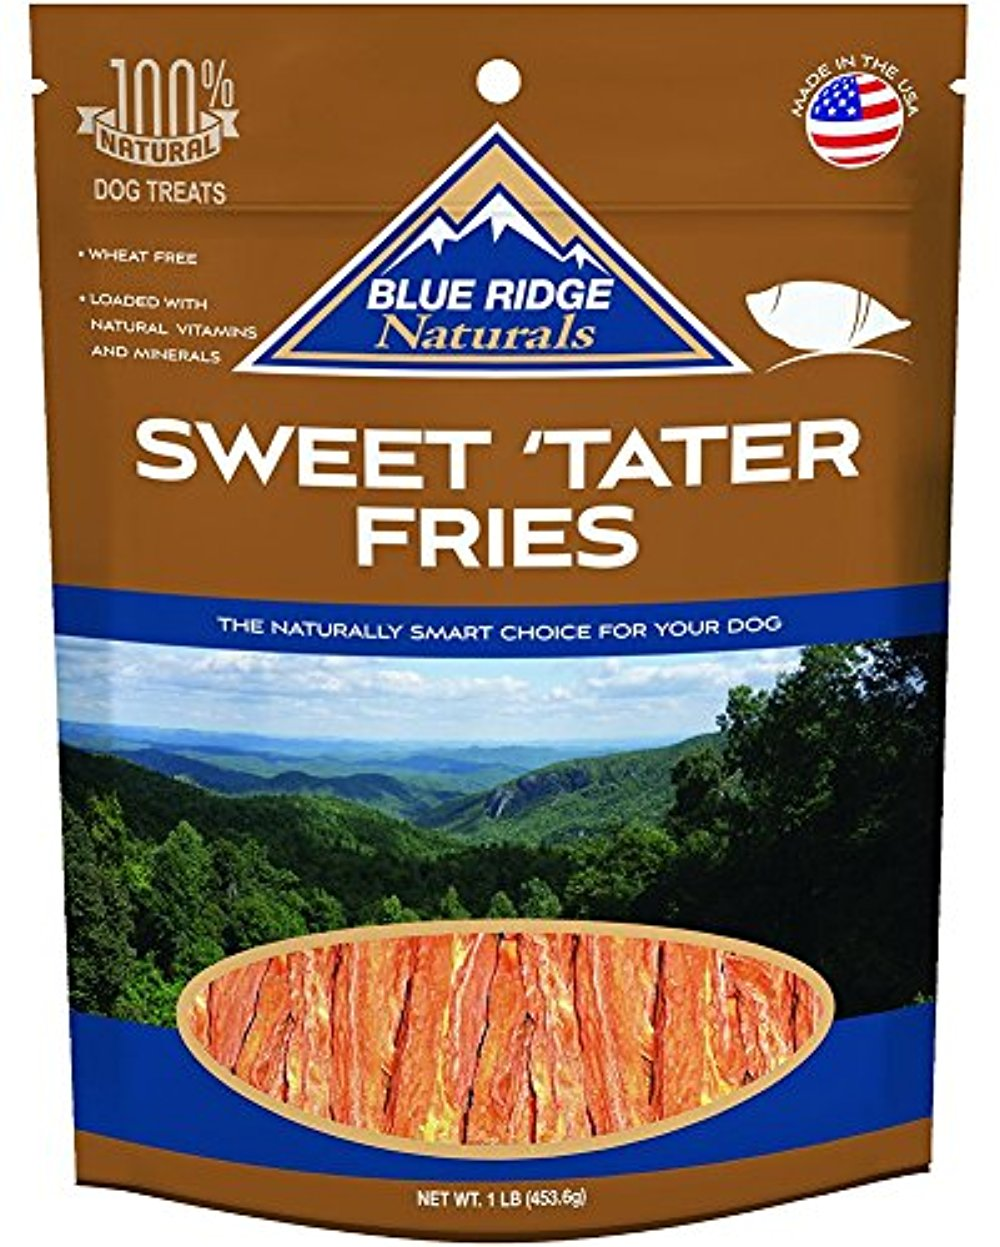 Blue Ridge Naturals Sweet Tater Fries 1 Pound (2 Pack)